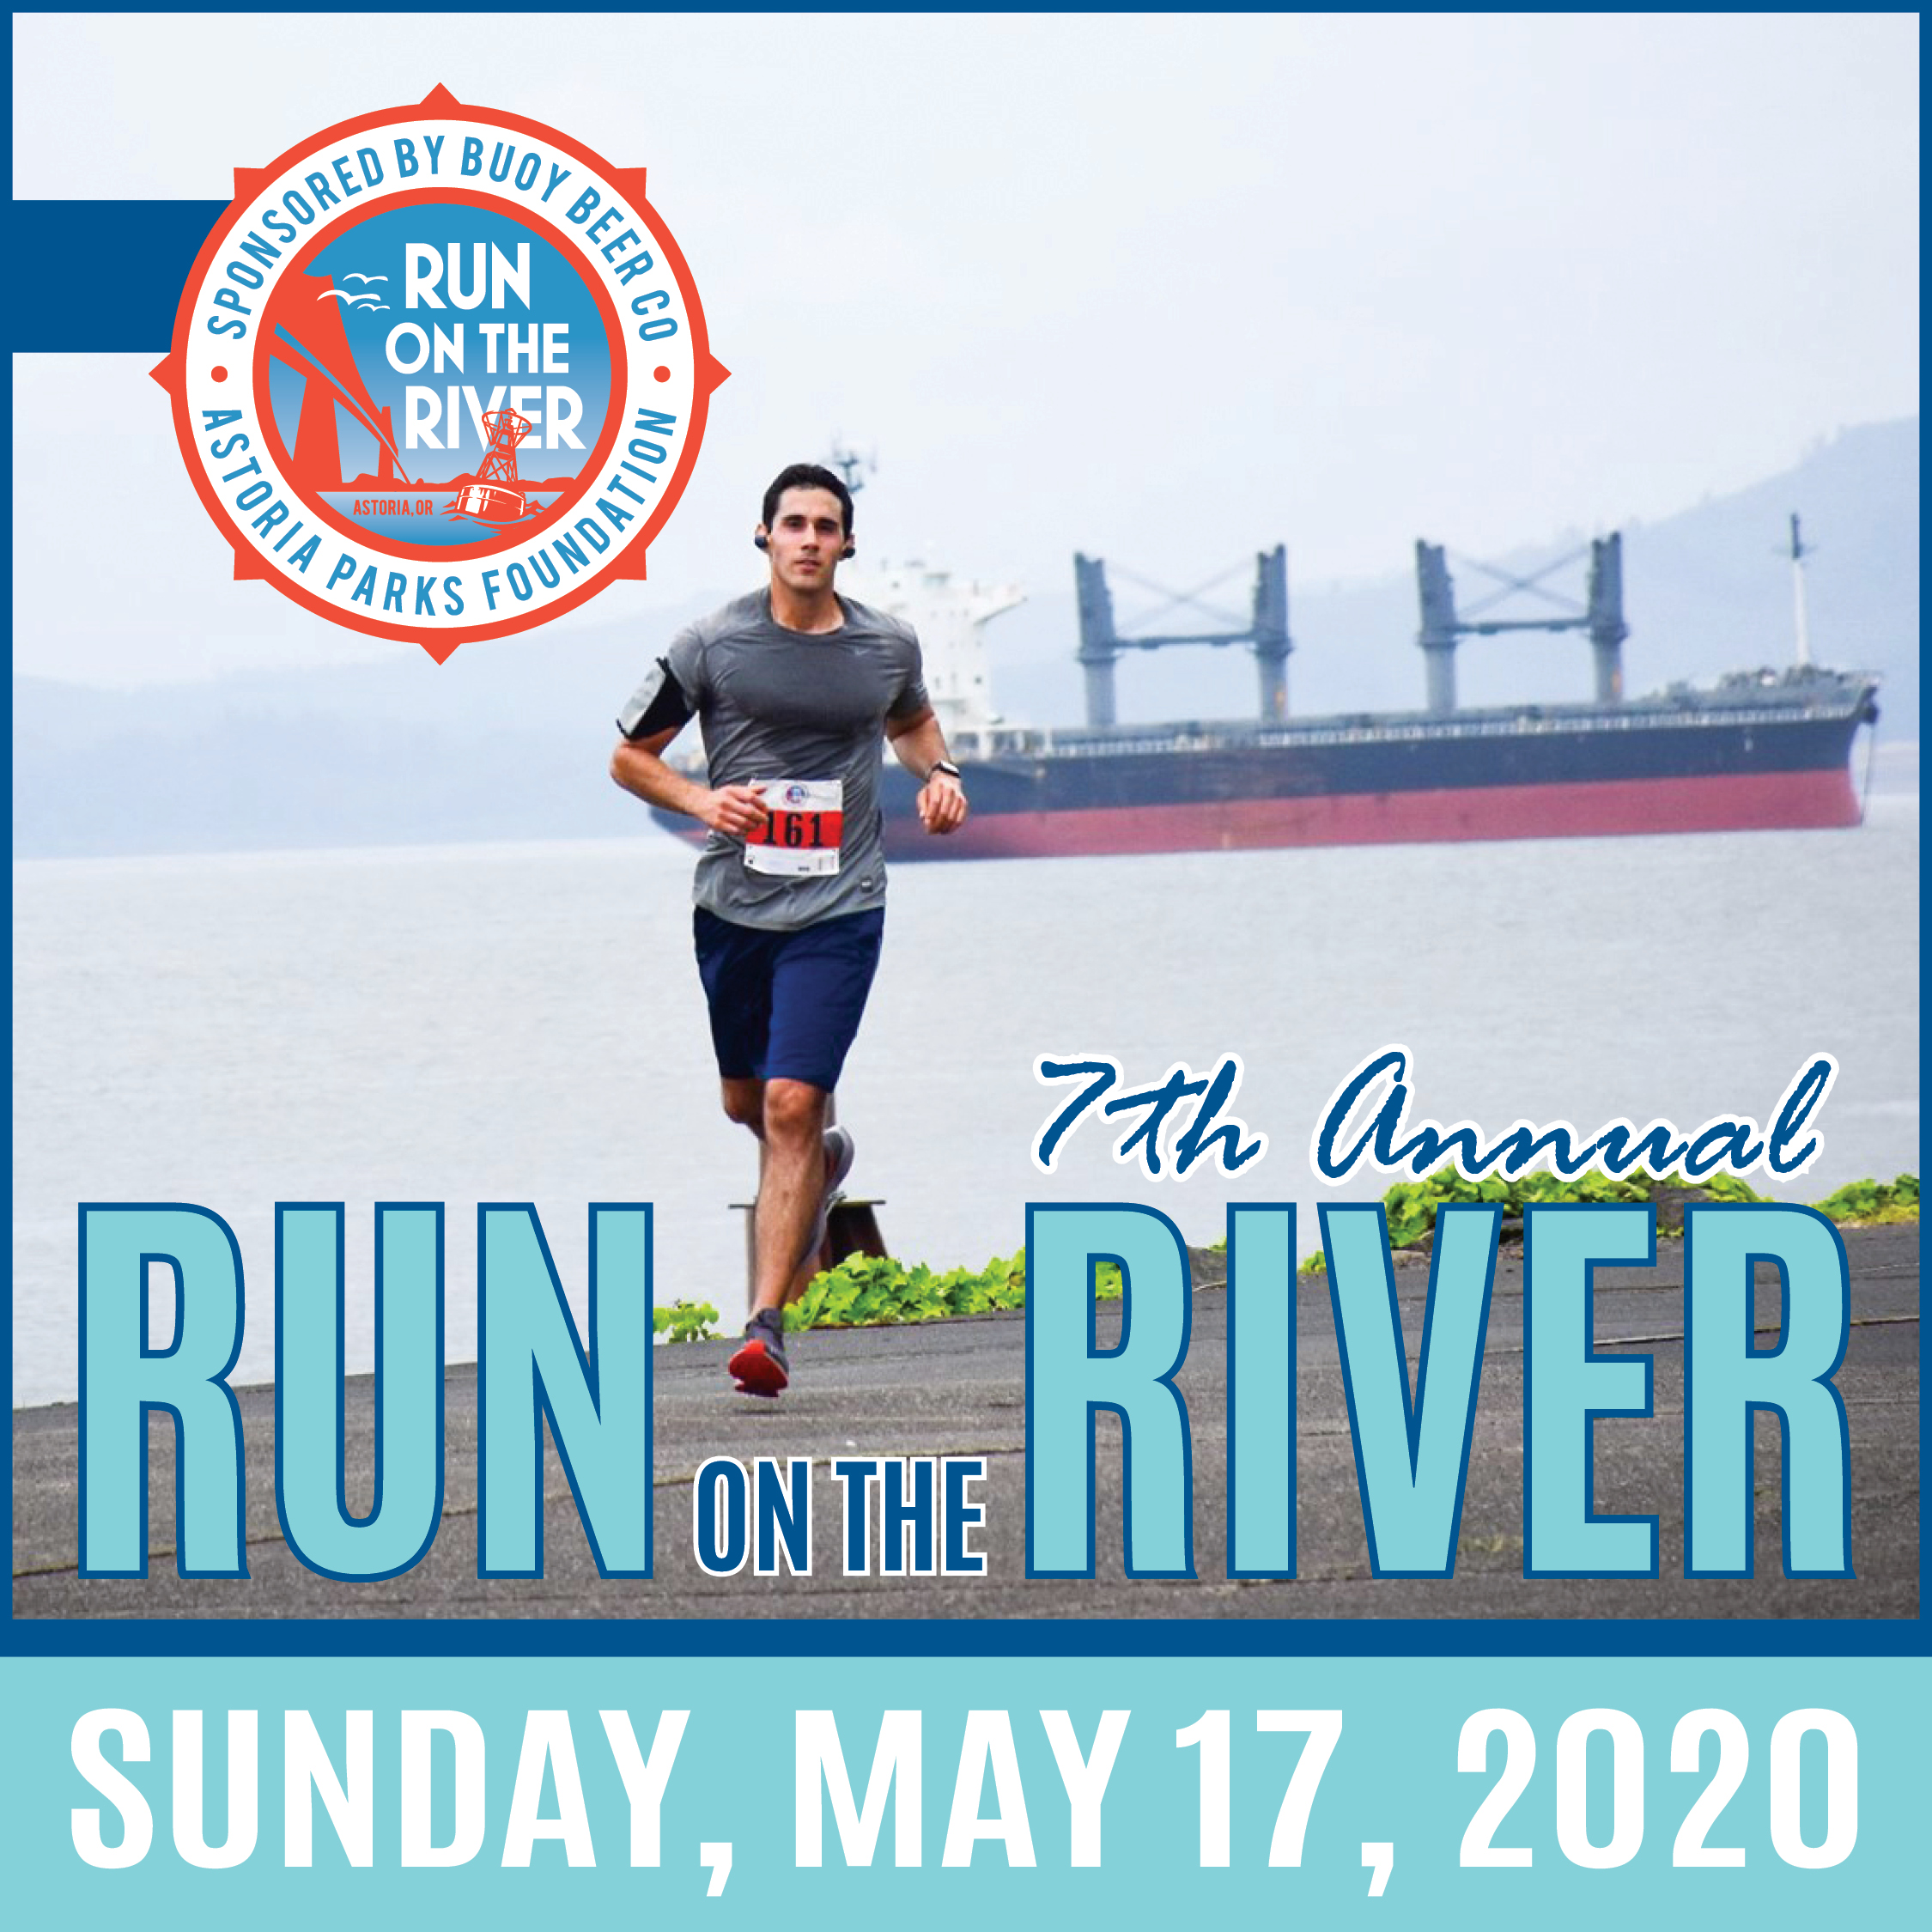 run_on_the_river